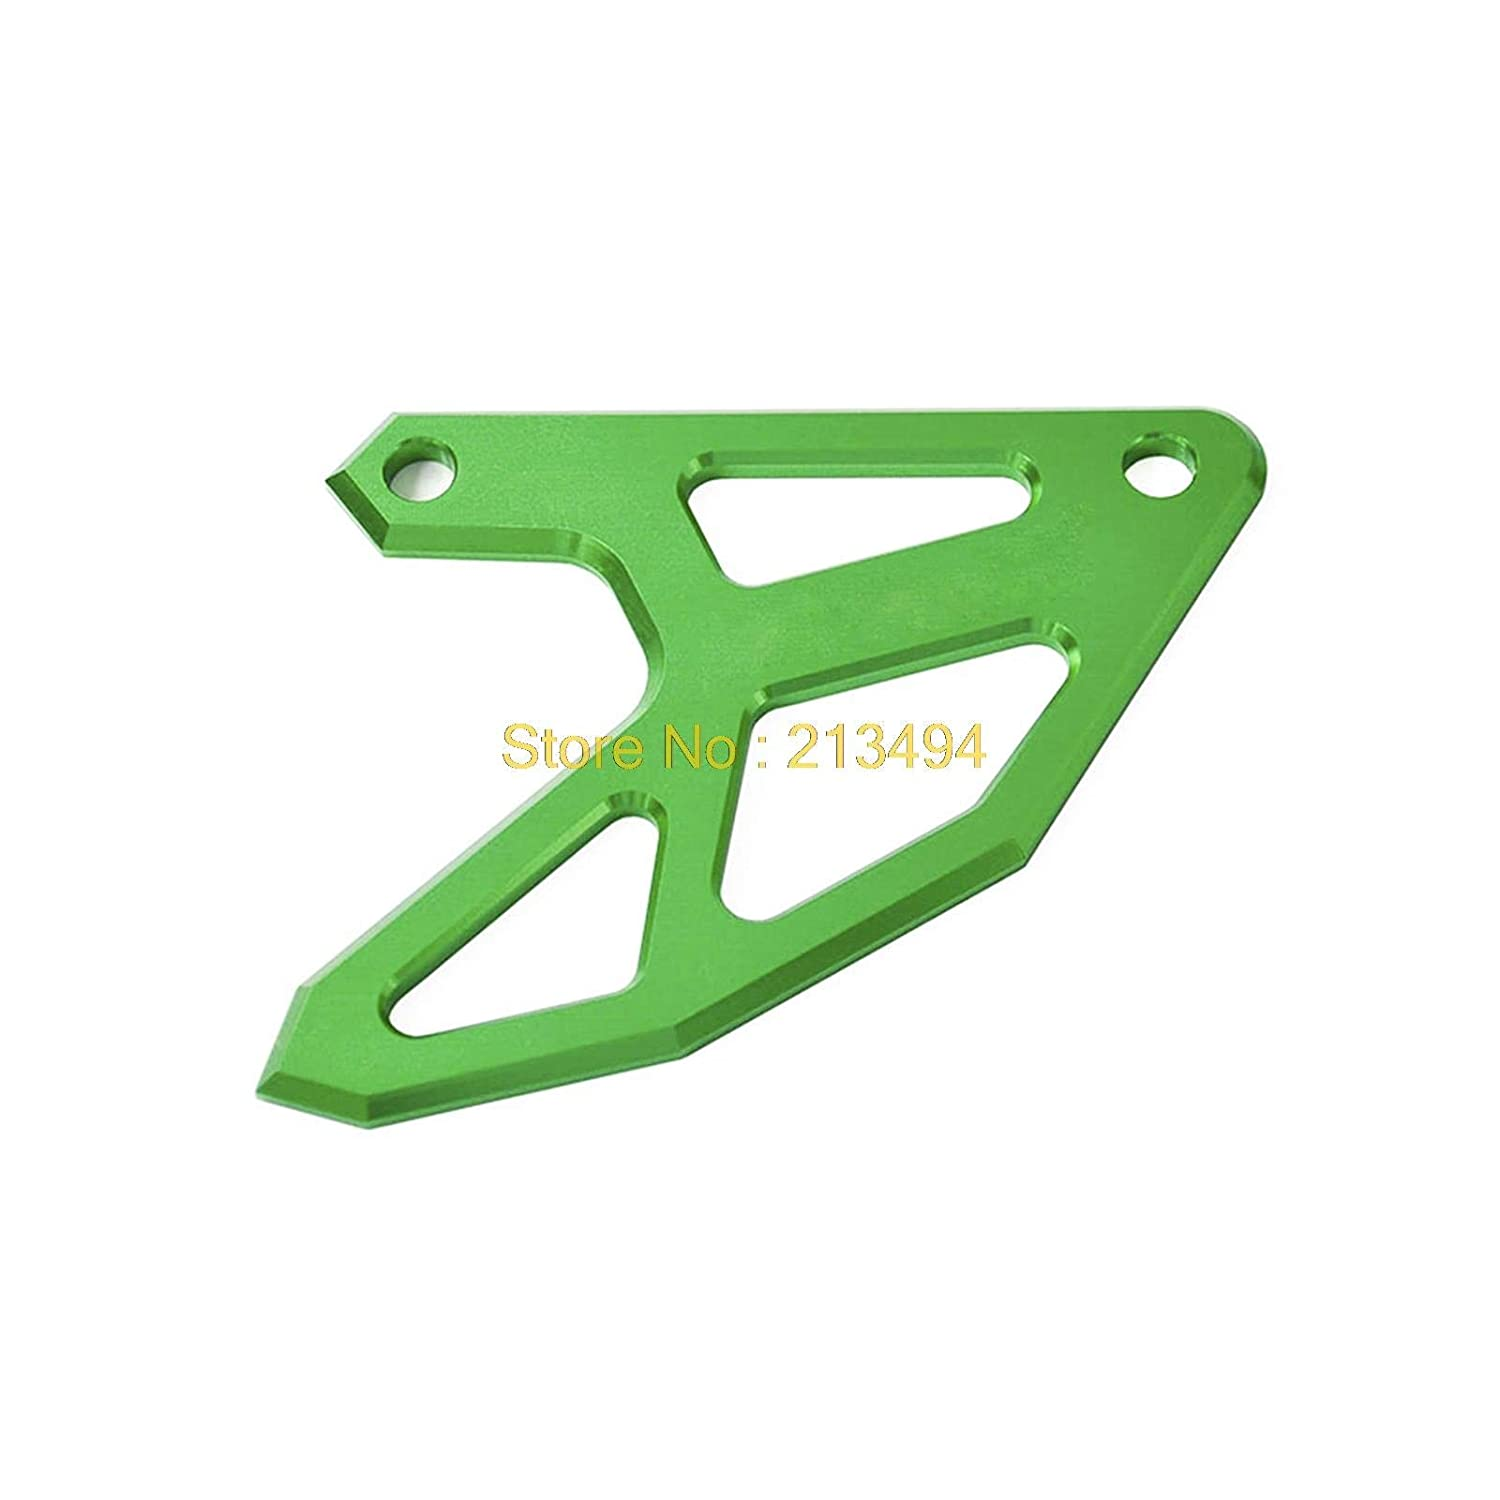 CNC Billet Rear Brake Disc Guard Potector For Kawasaki KX125 KX250 KX250F KX450F KLX450R Green TLU-Kaxu